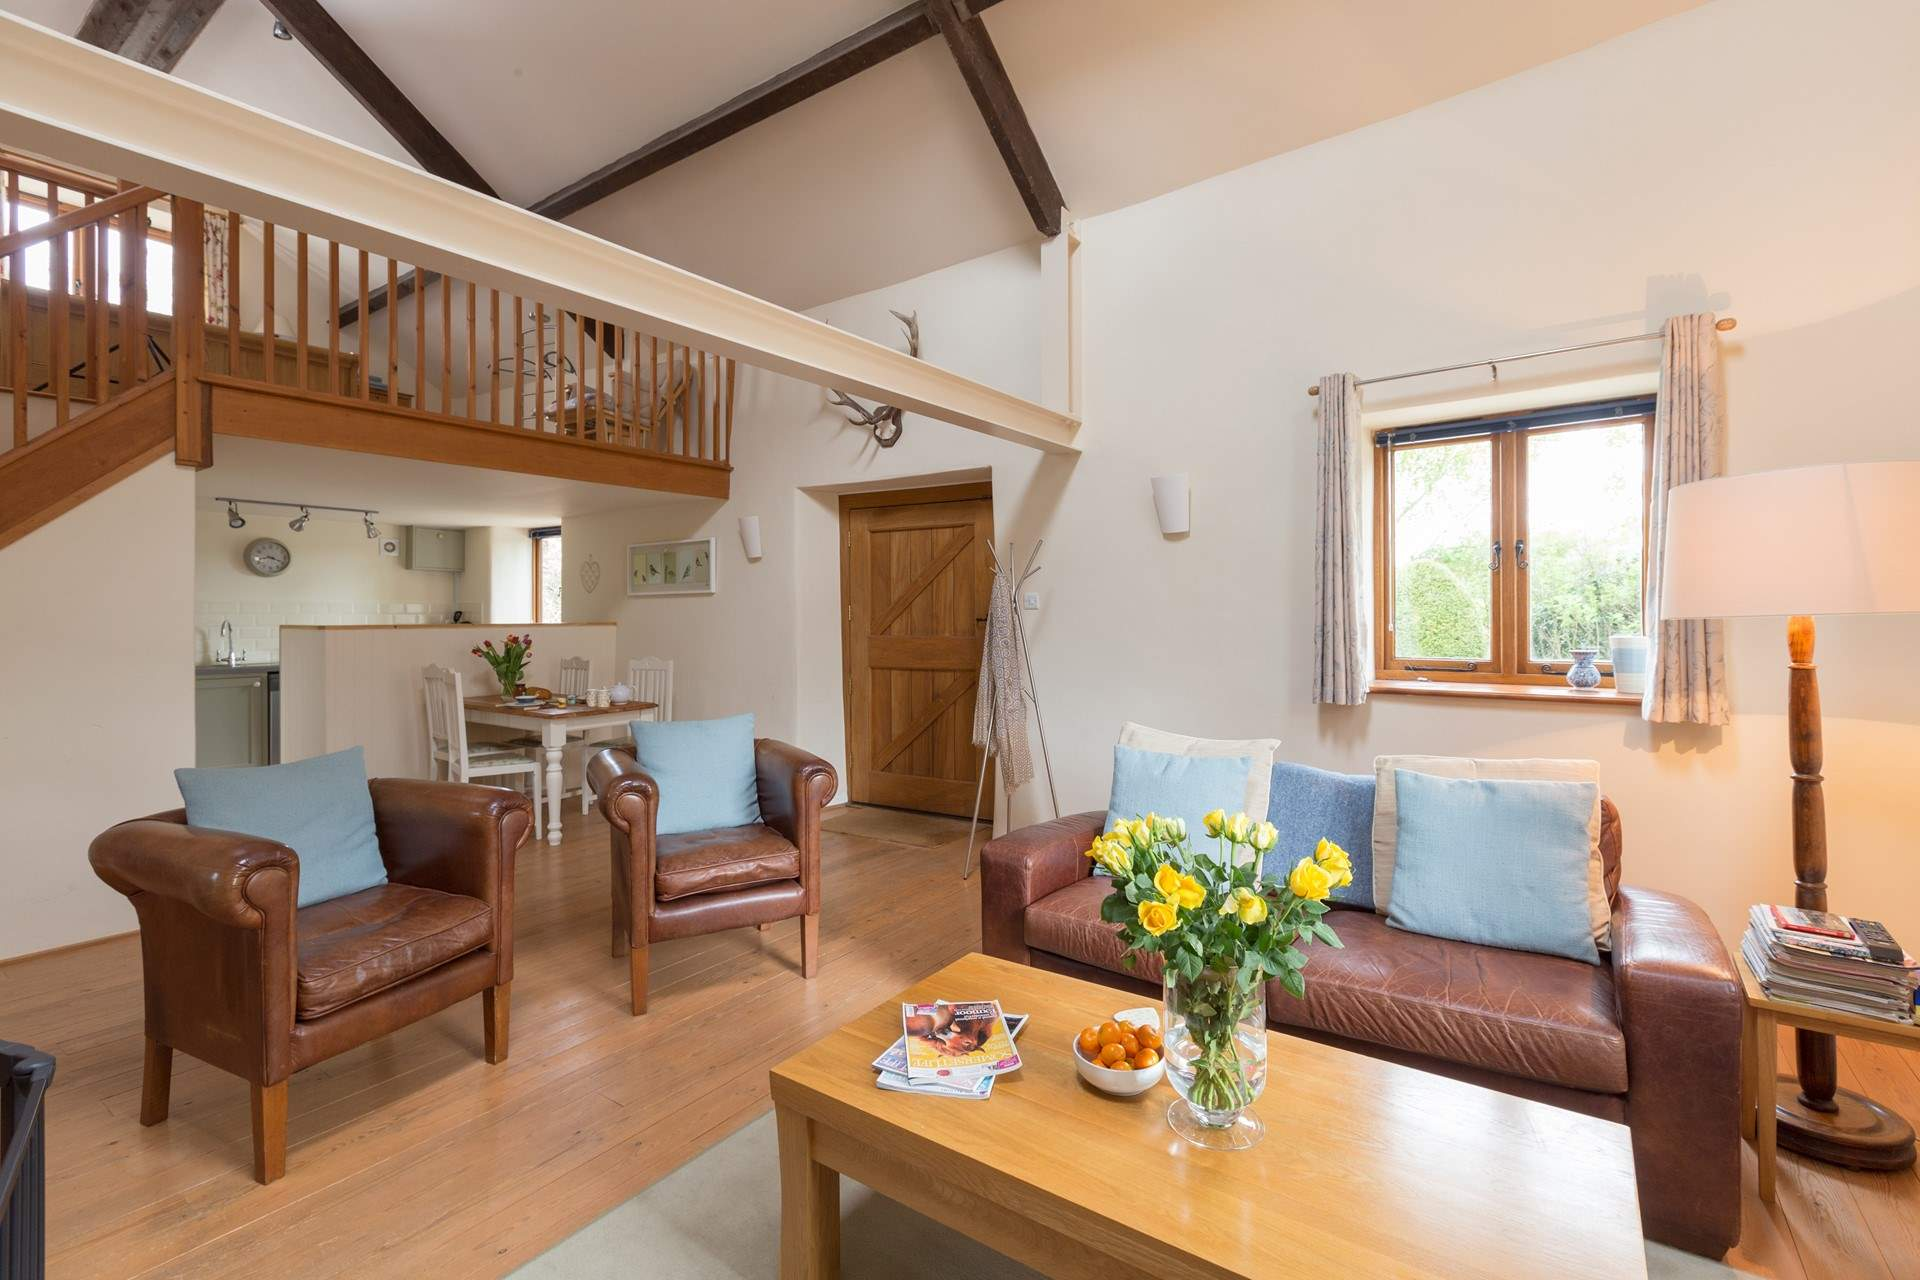 The Open Plan Interior Of Headford Farm Cottage Is Bright And Spacious.  There Is A